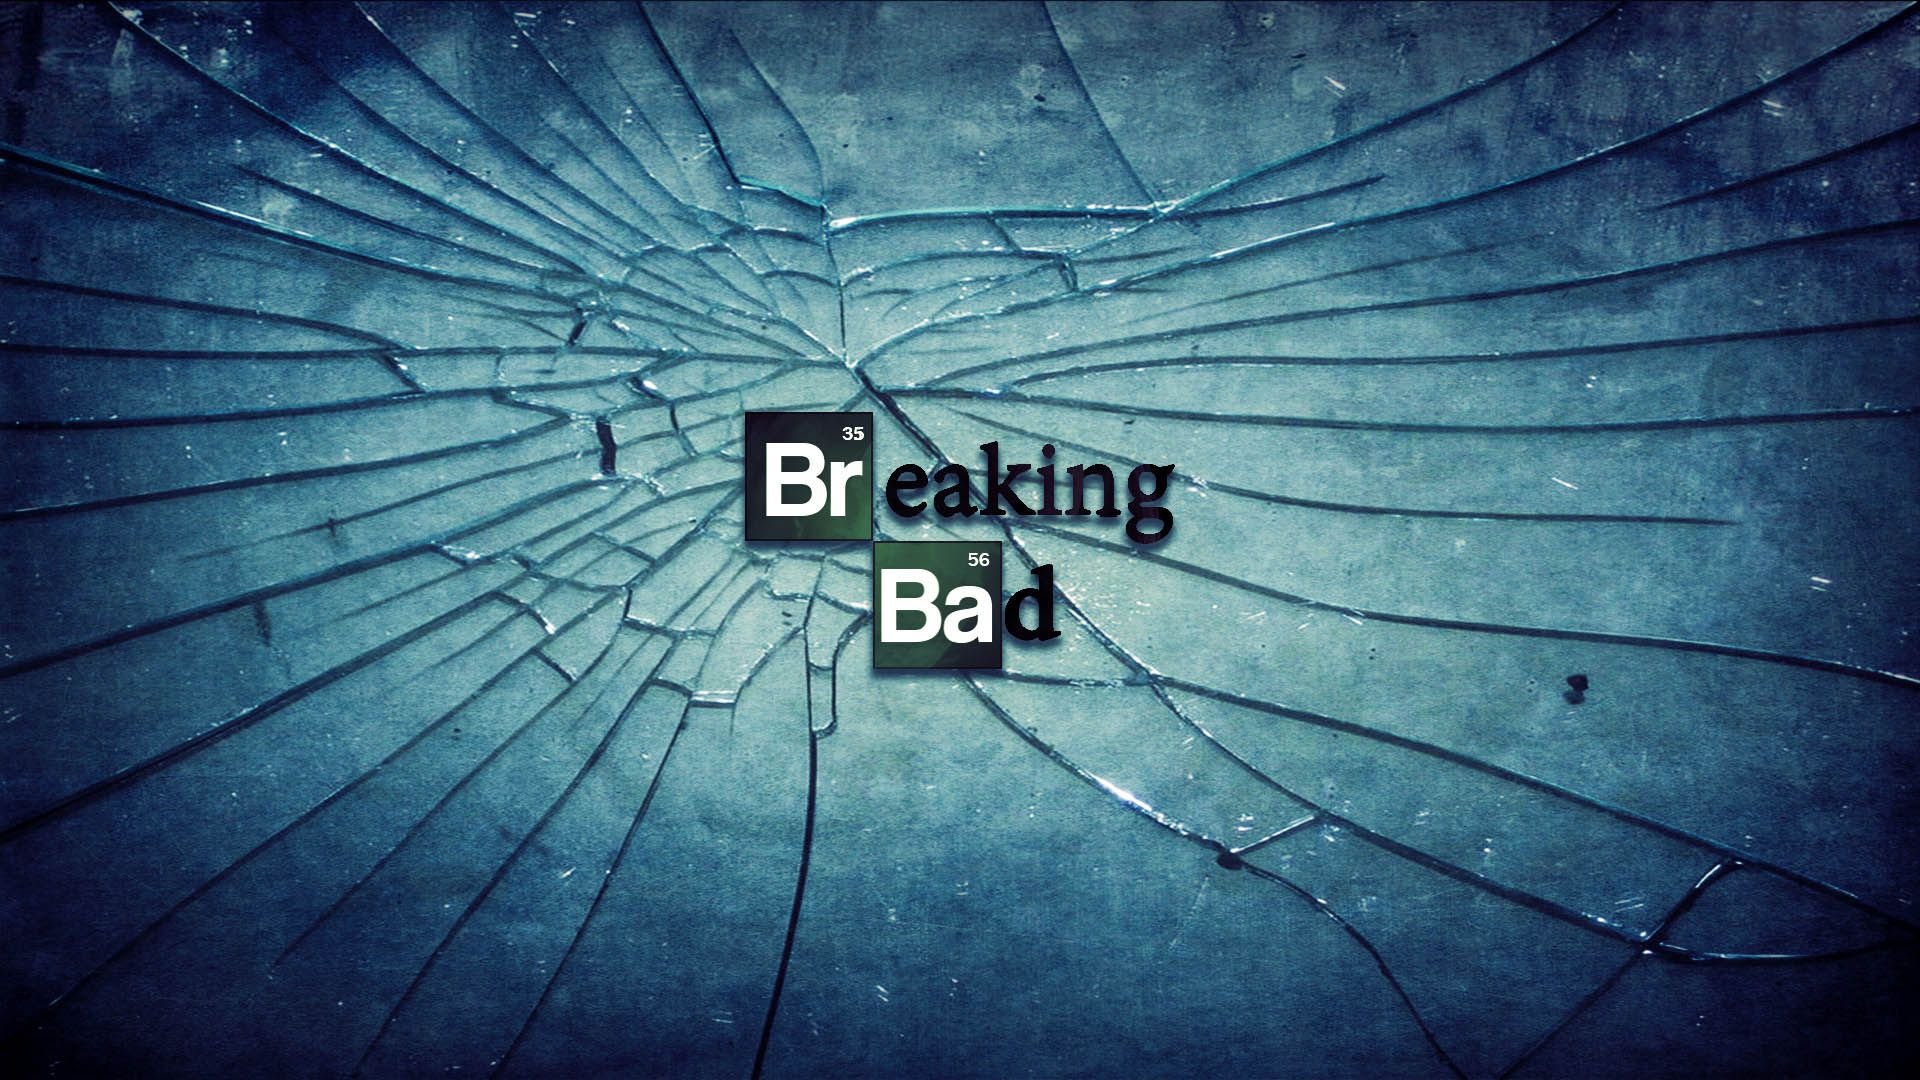 Broken Glass Live Wallpaper Android Apps on Google Play